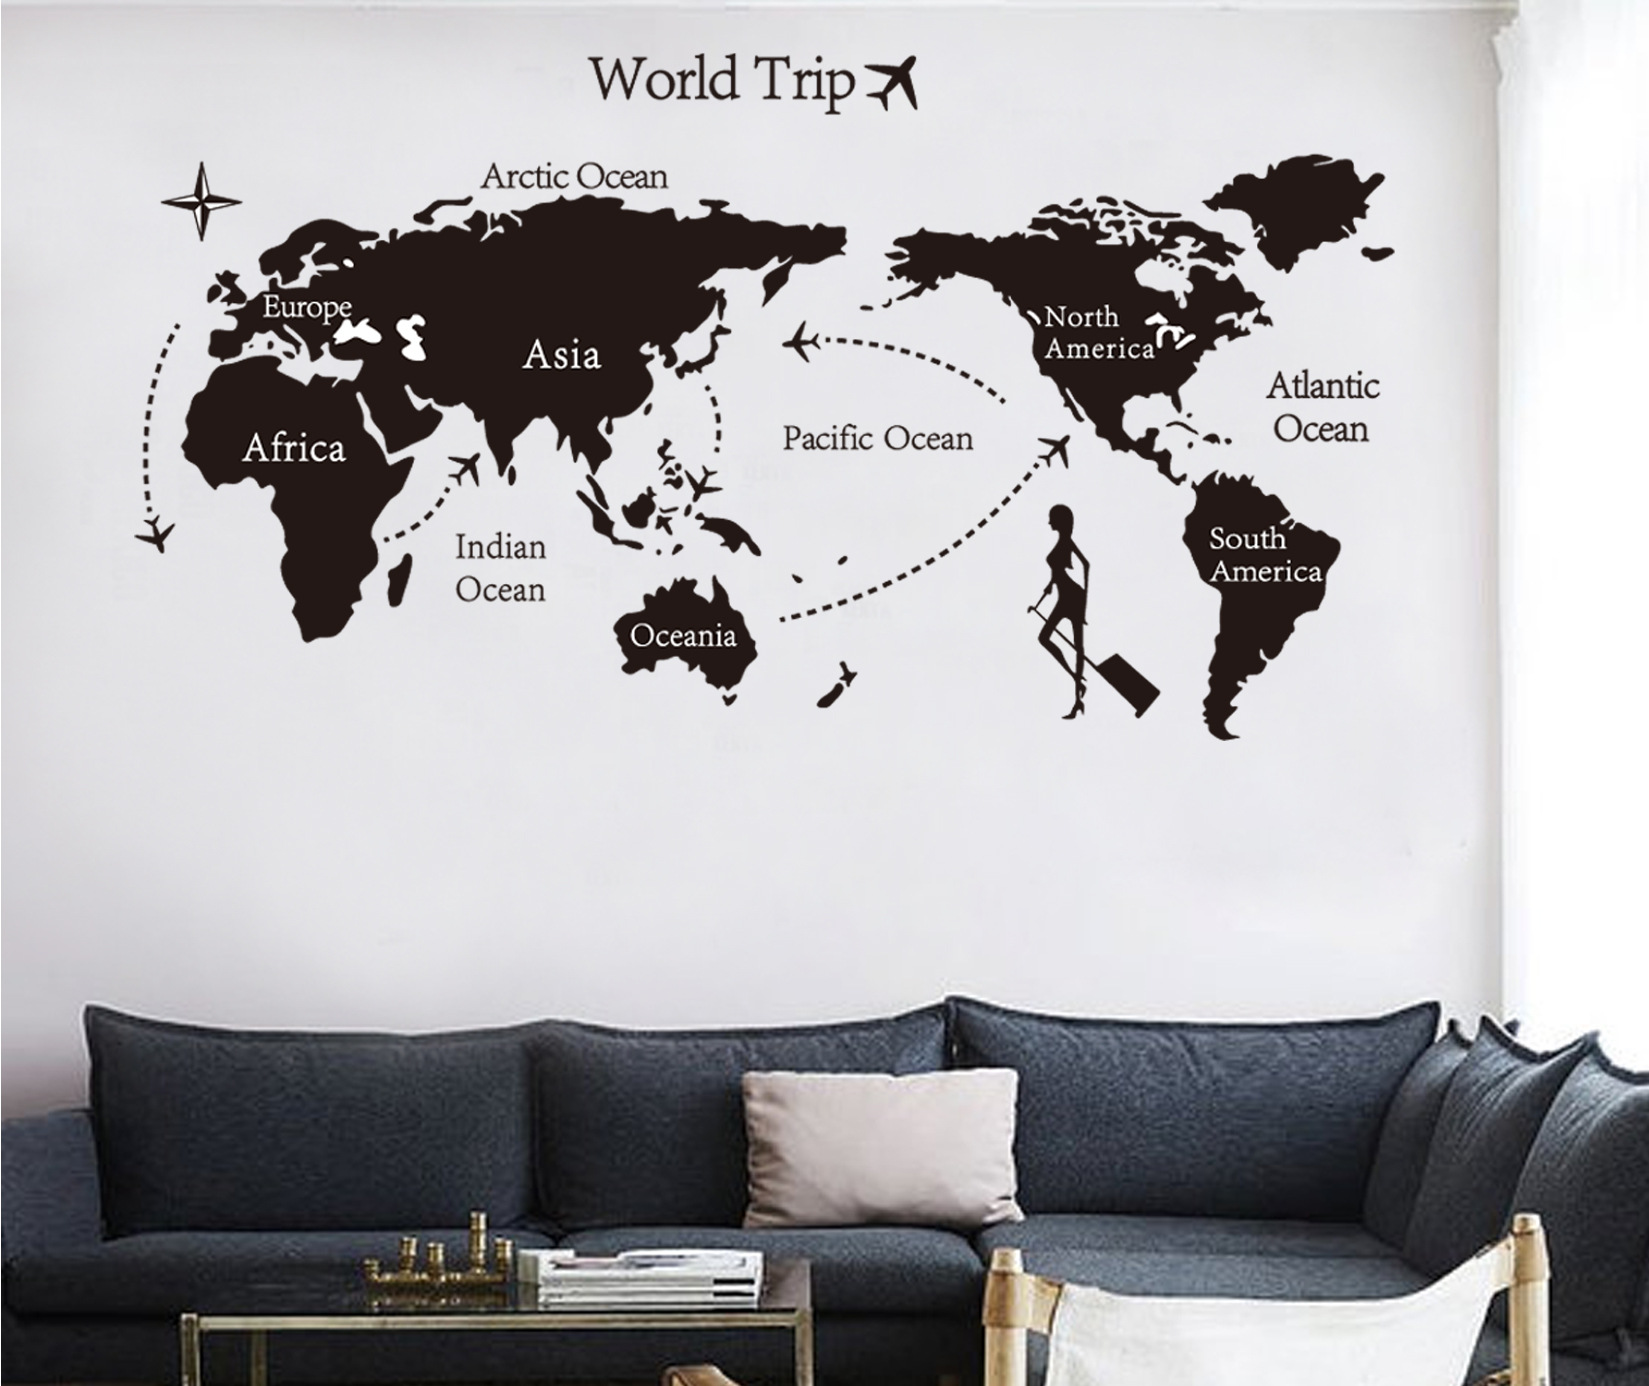 Creativo grande diy world map wallpaper 3d arte de la pared lista de fotos gumiabroncs Gallery